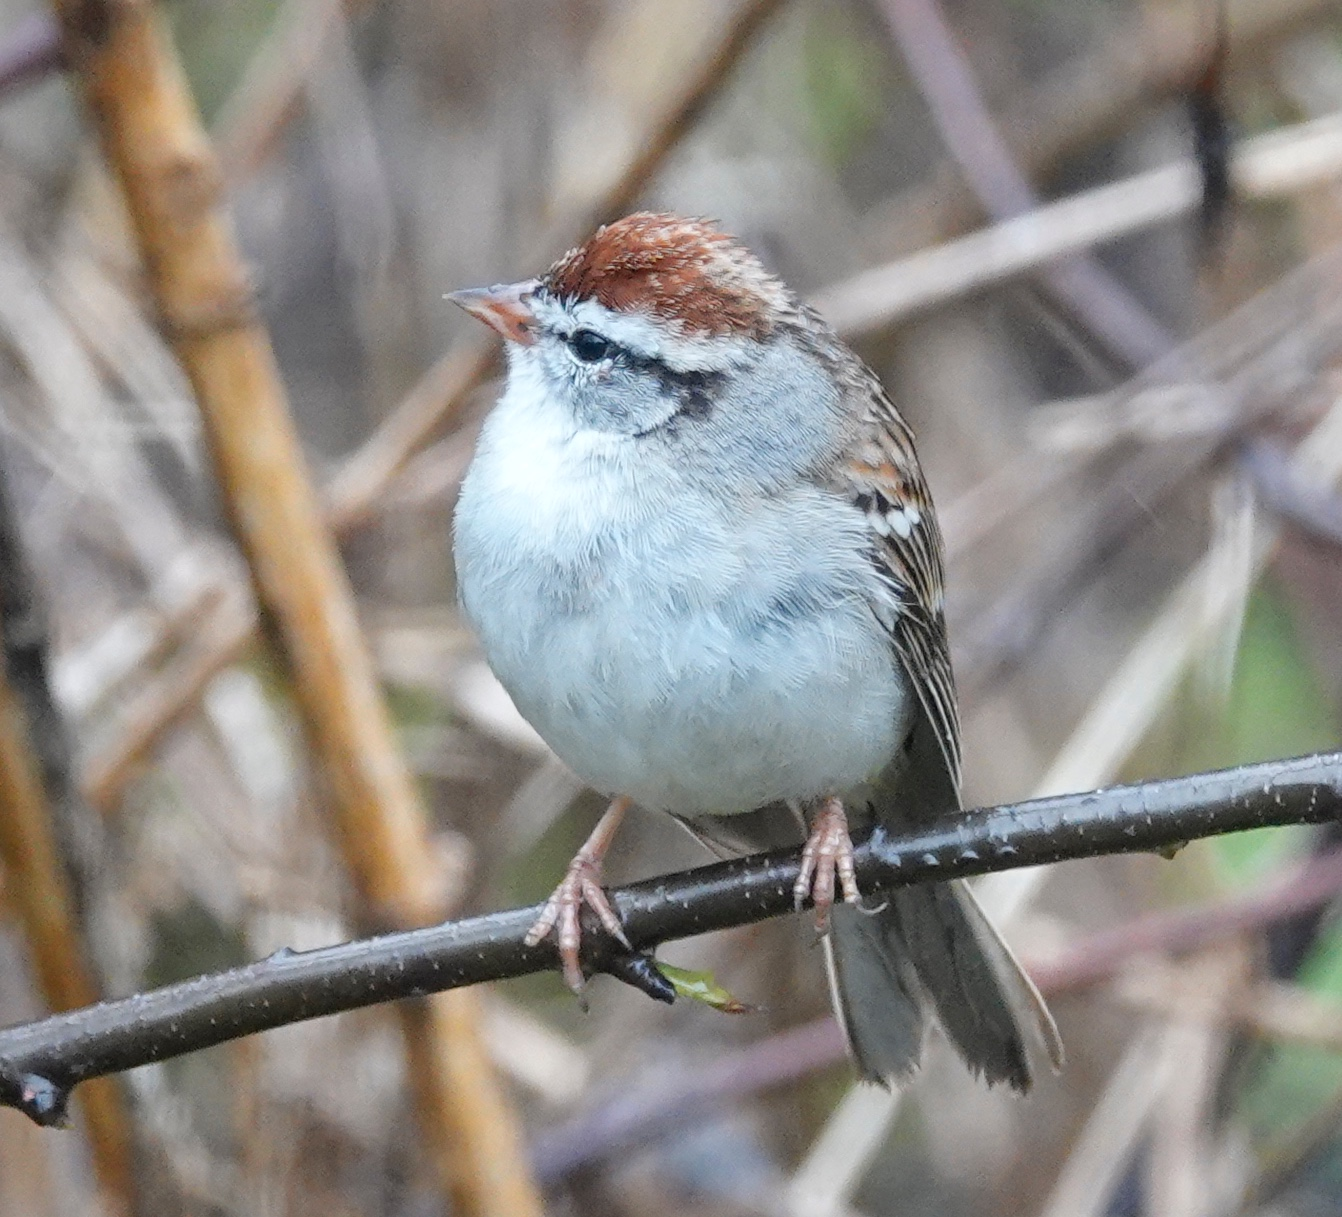 The chipping sparrow chooses to trill more like an insect than like Elvis Presley.